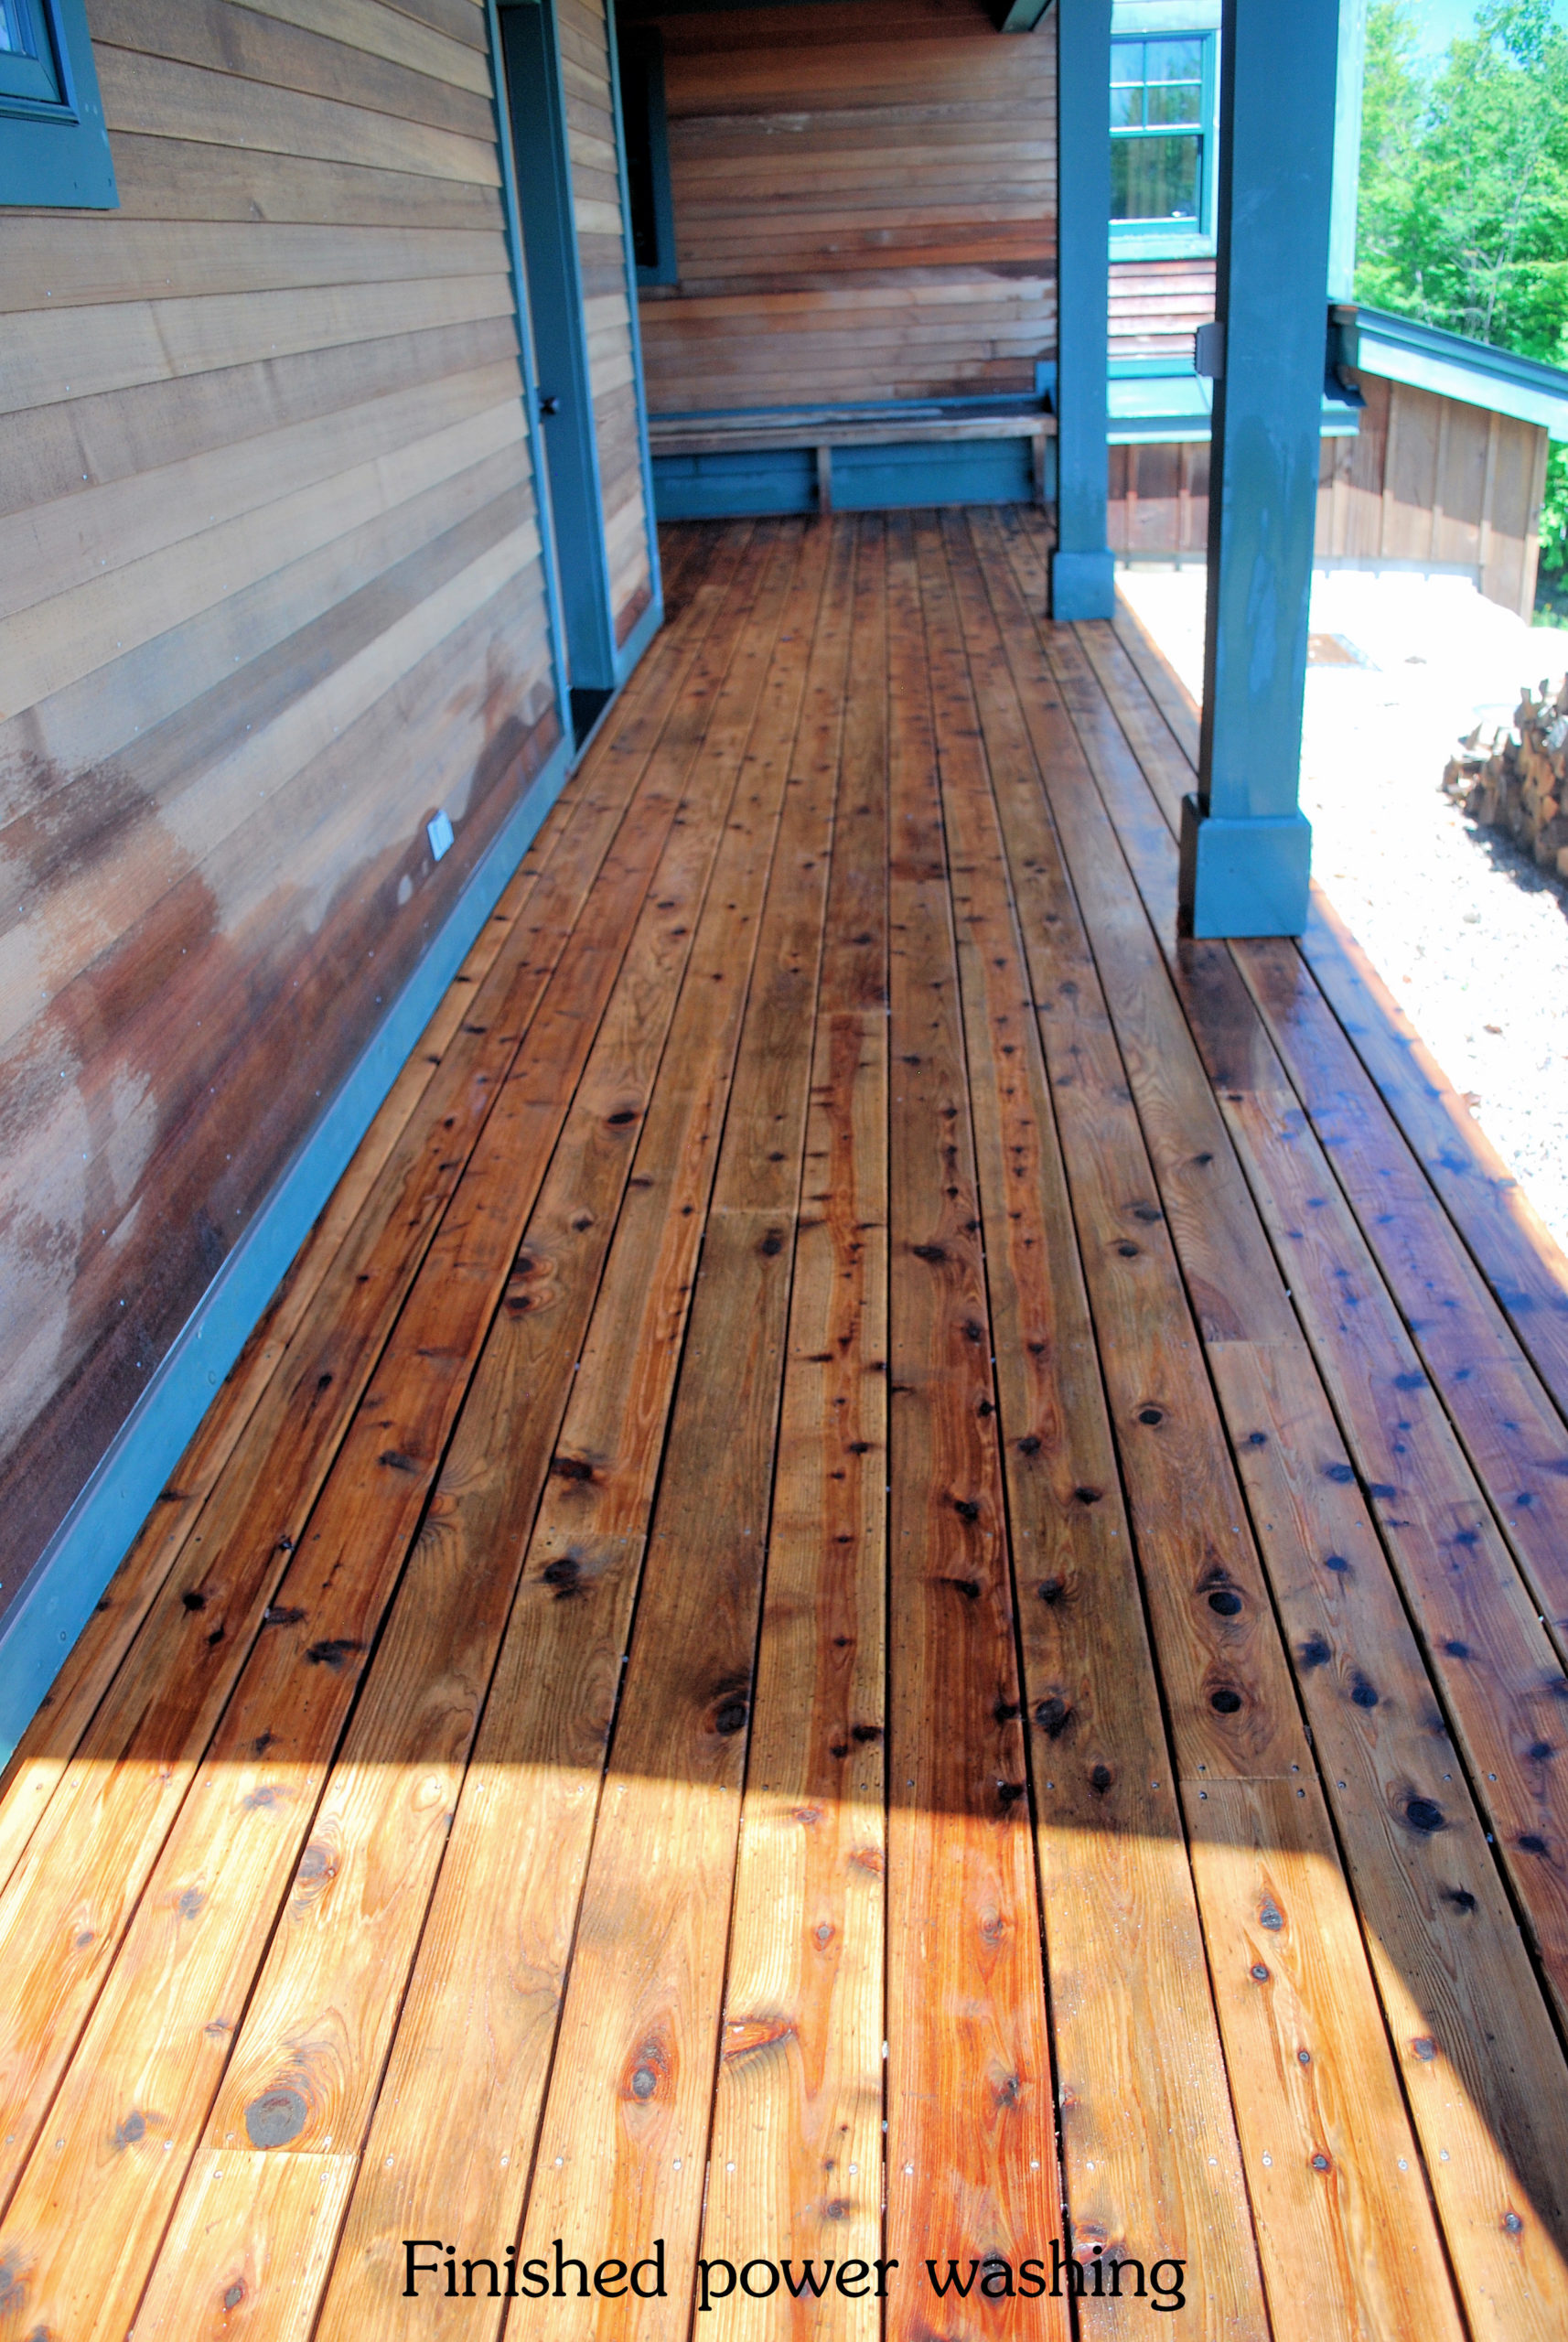 Freshly power washed wooden deck